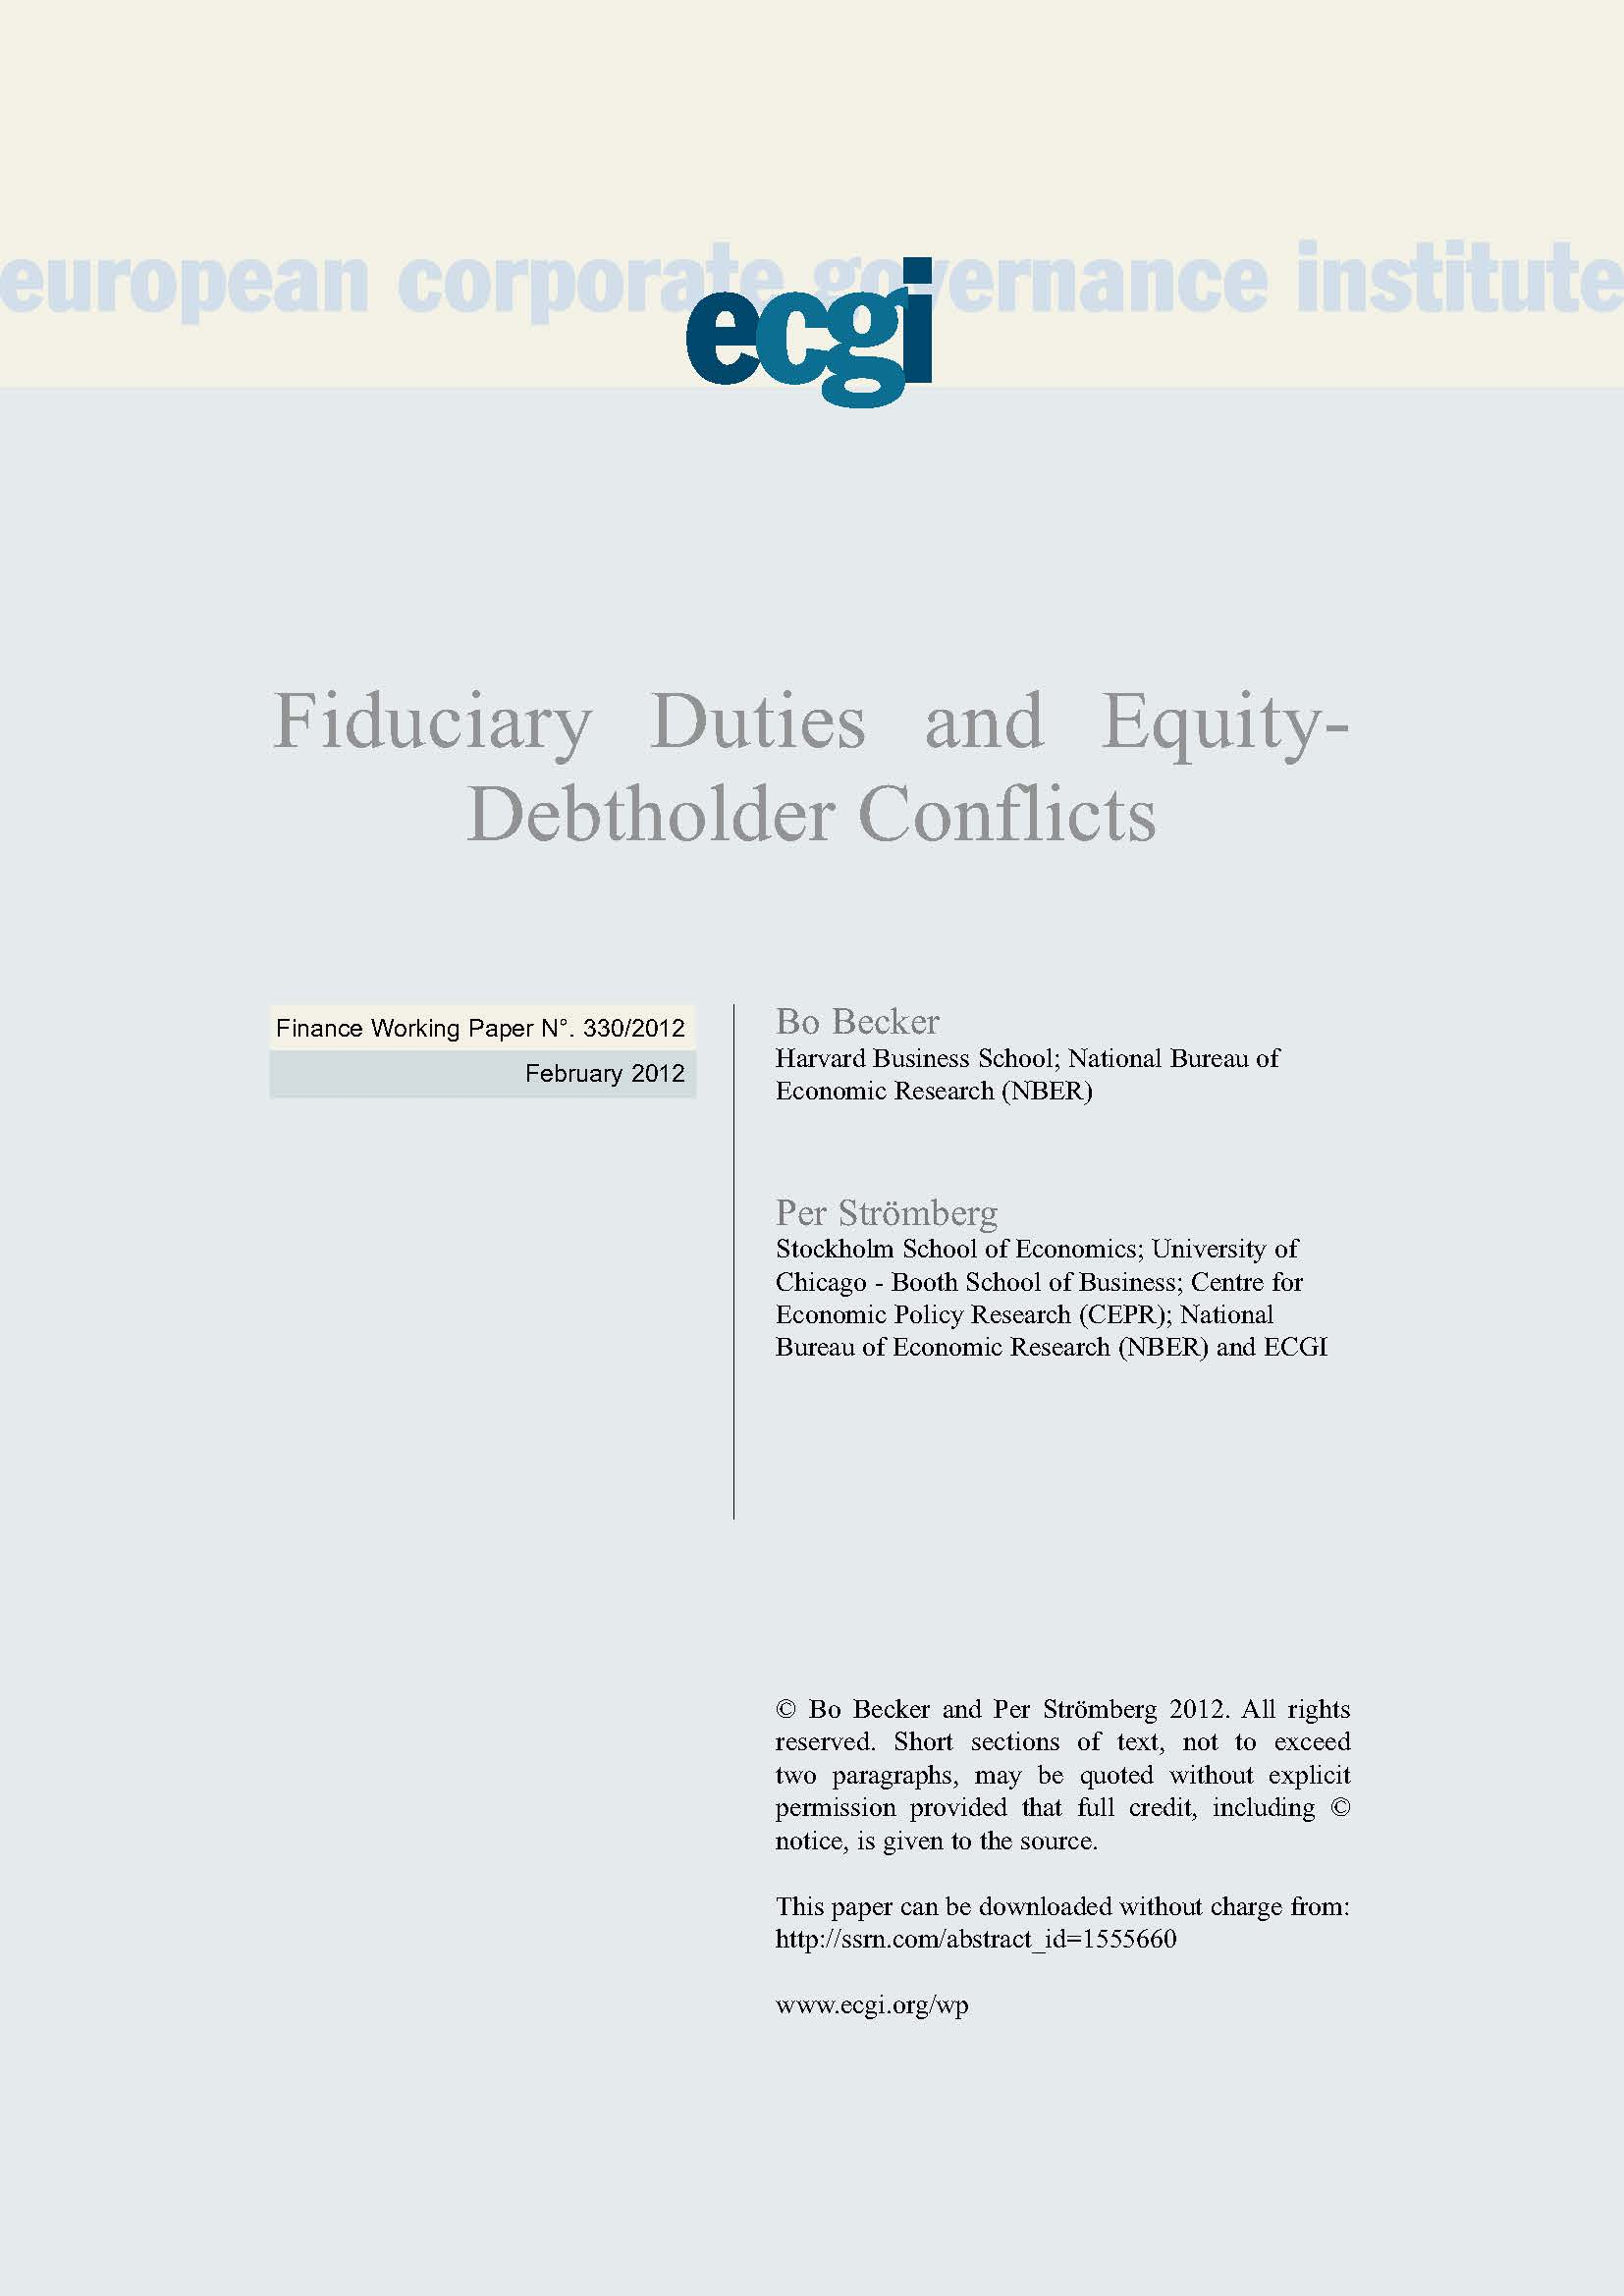 Essay: The duties of the fiduciary